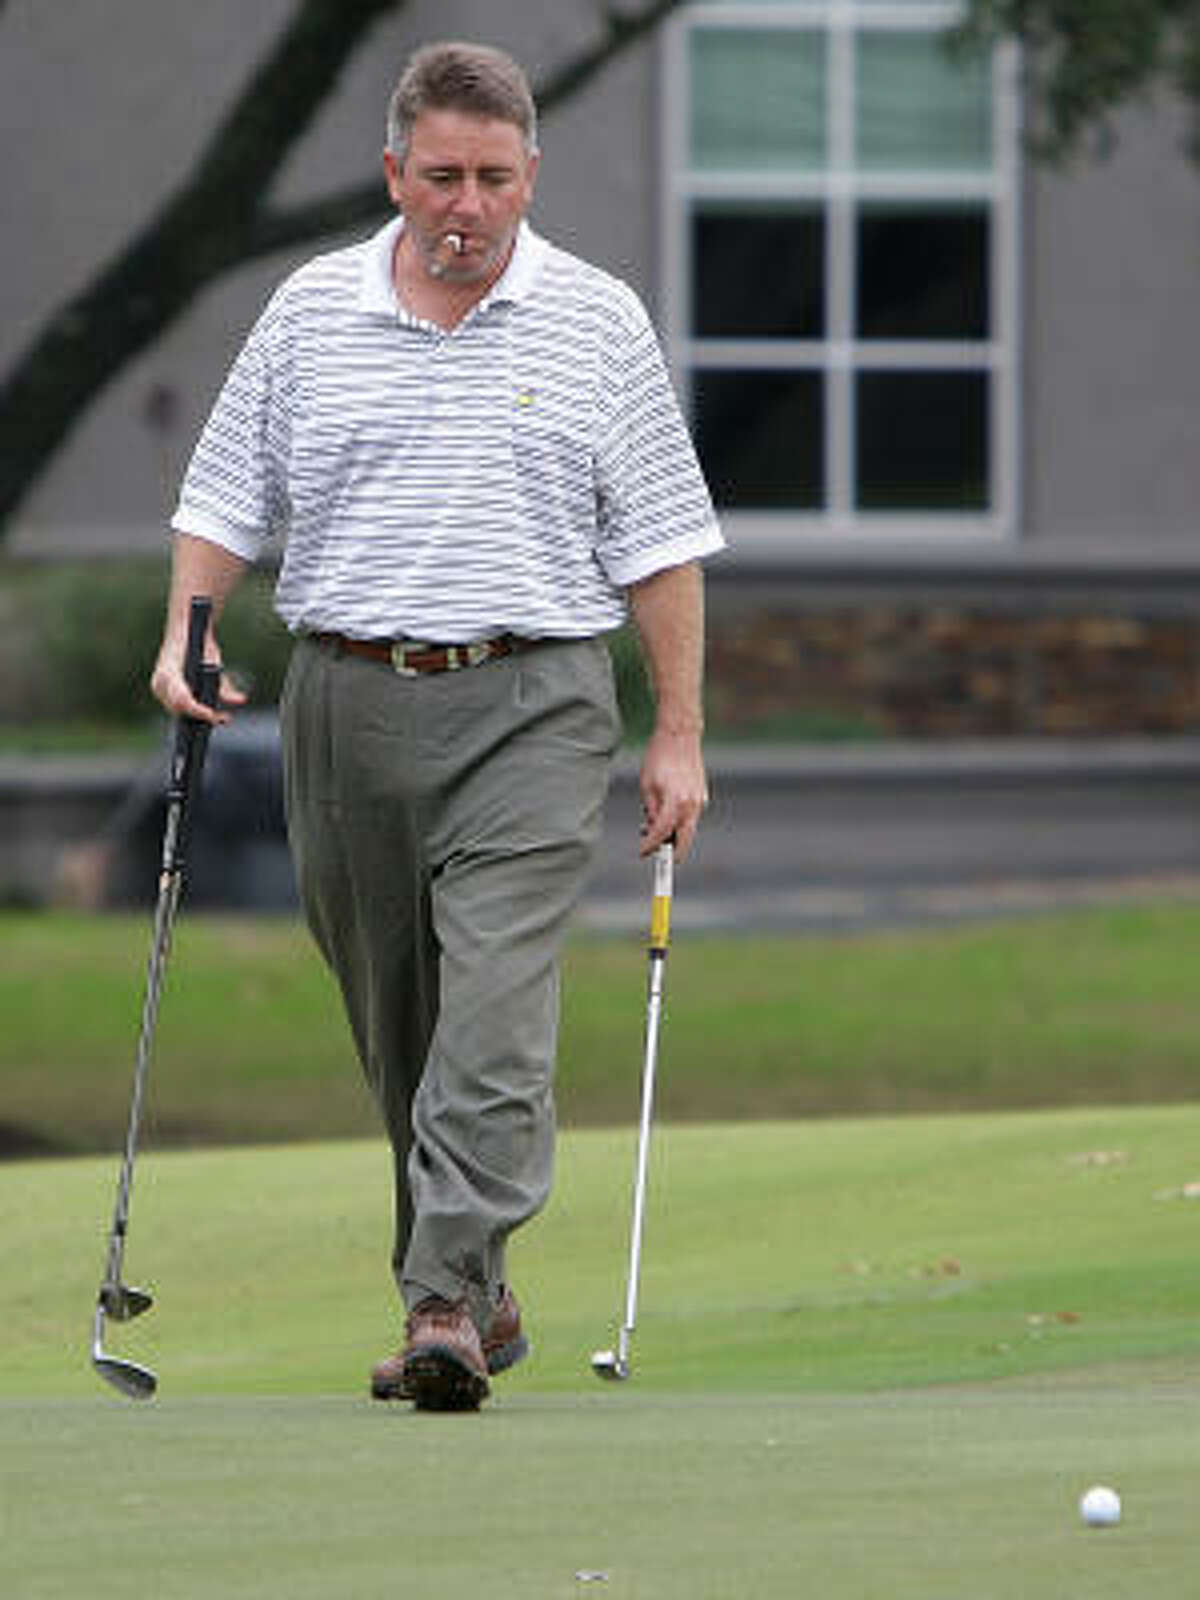 Craig Phillips smokes a cigar while eyeing the seventh hole.